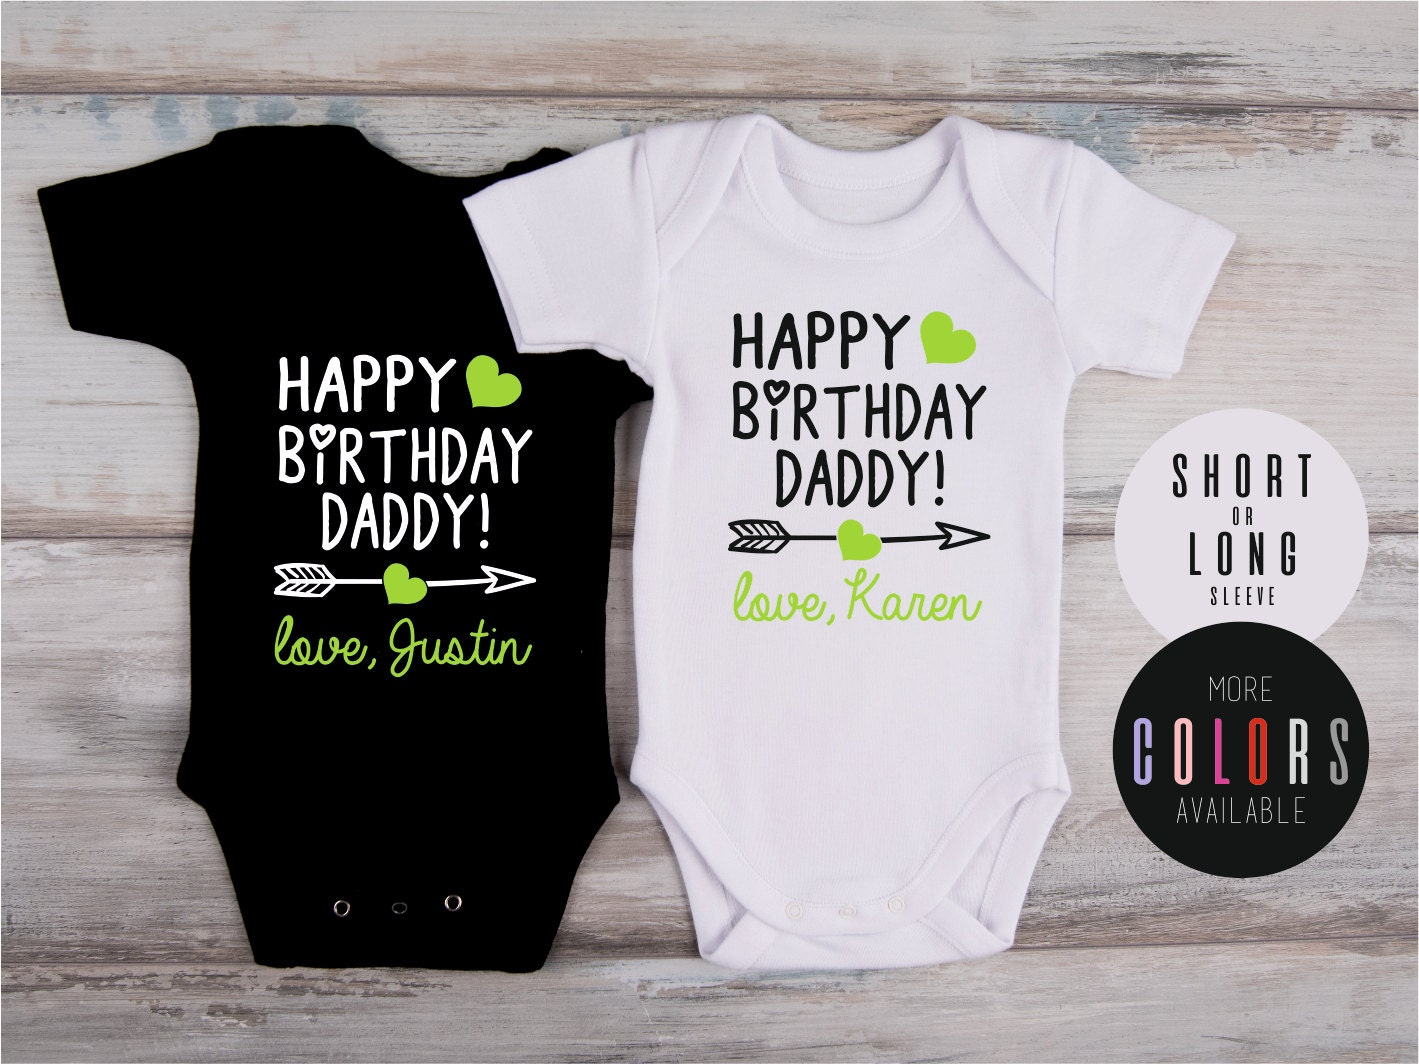 Dad Birthday Gift HAPPY BIRTHDAY DADDY Personalized Bodysuit Baby Outfit Custom For More Colors Available